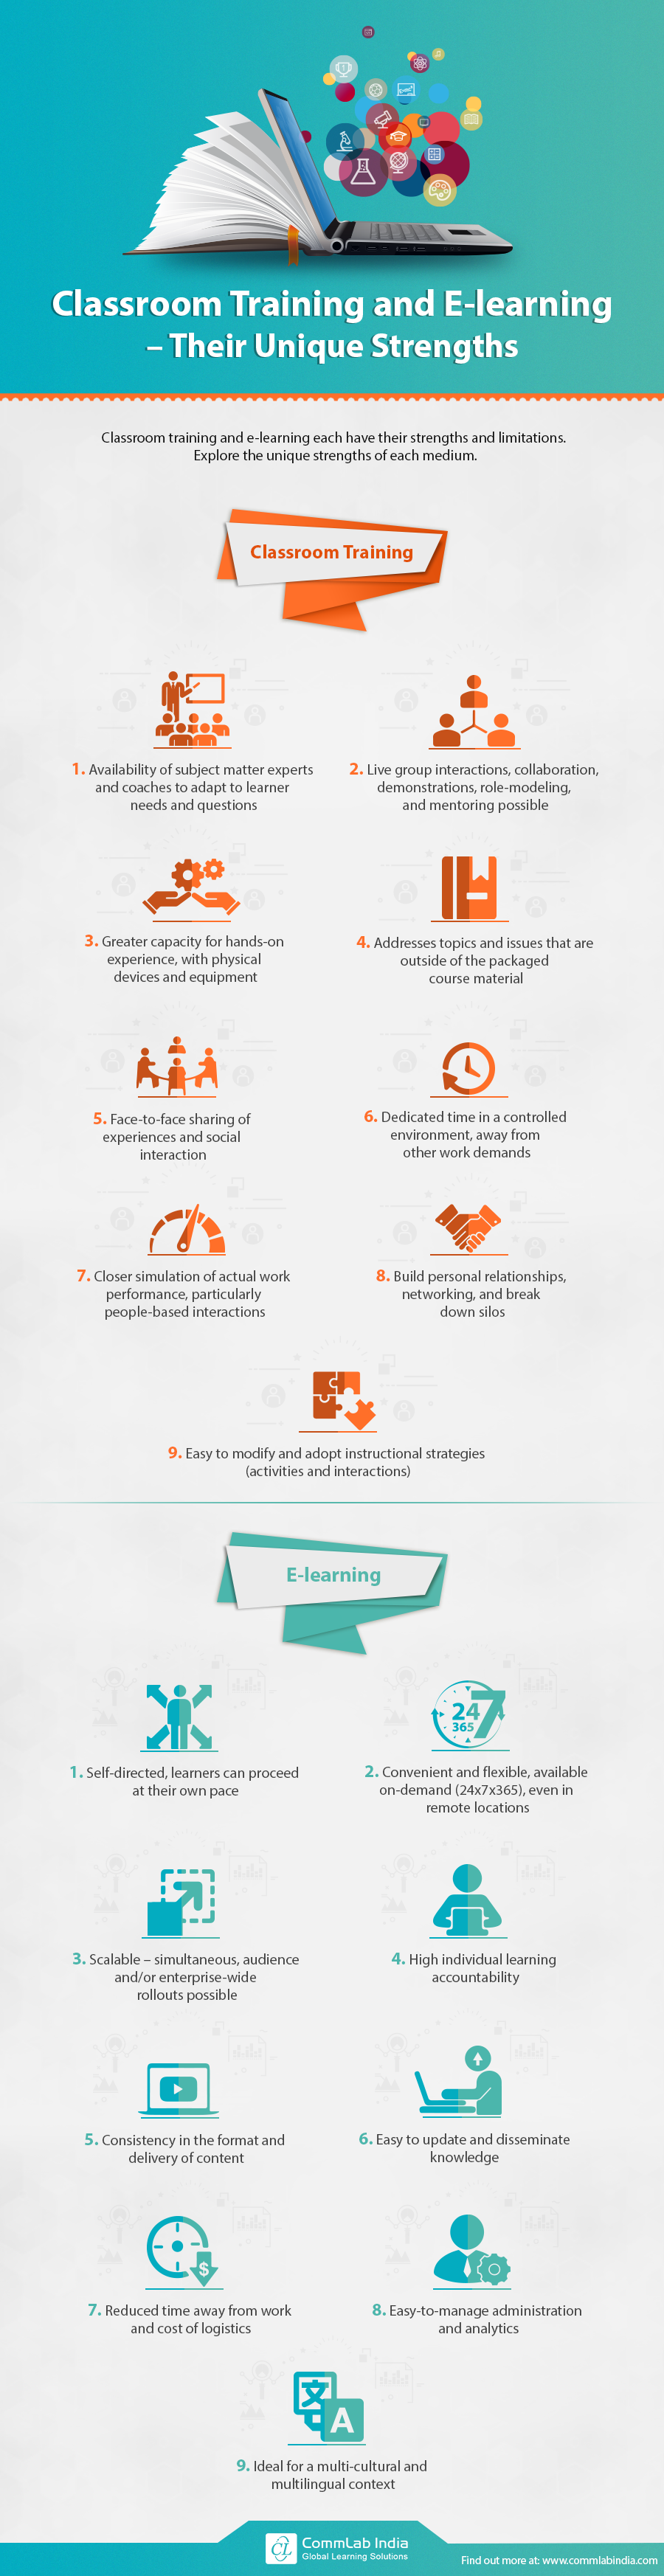 Classroom Training and E-learning - Their Unique Strengths [Infographic]